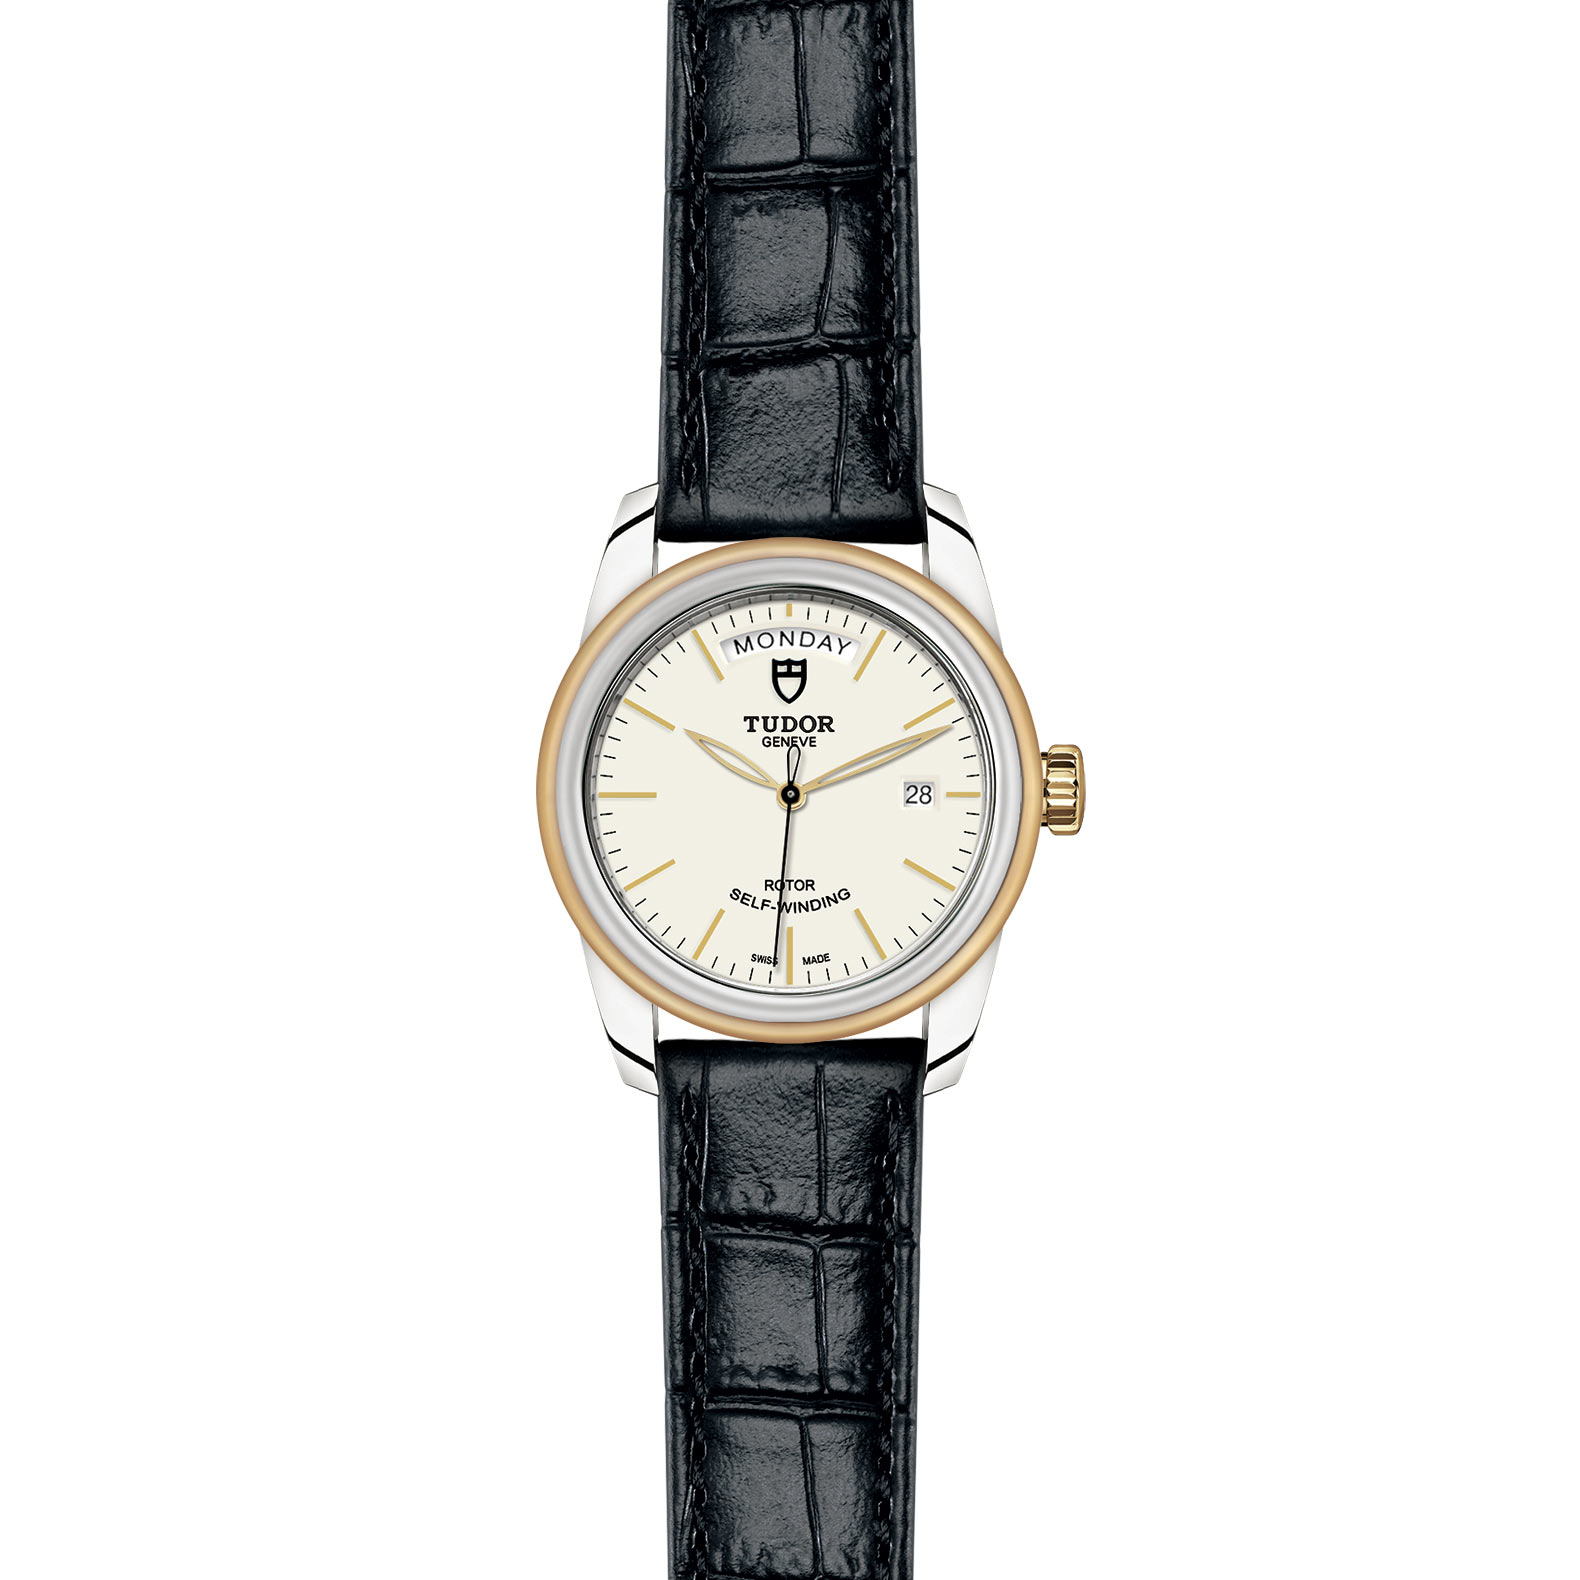 TUDOR Glamour Date Day M56003 0107 Frontfacing